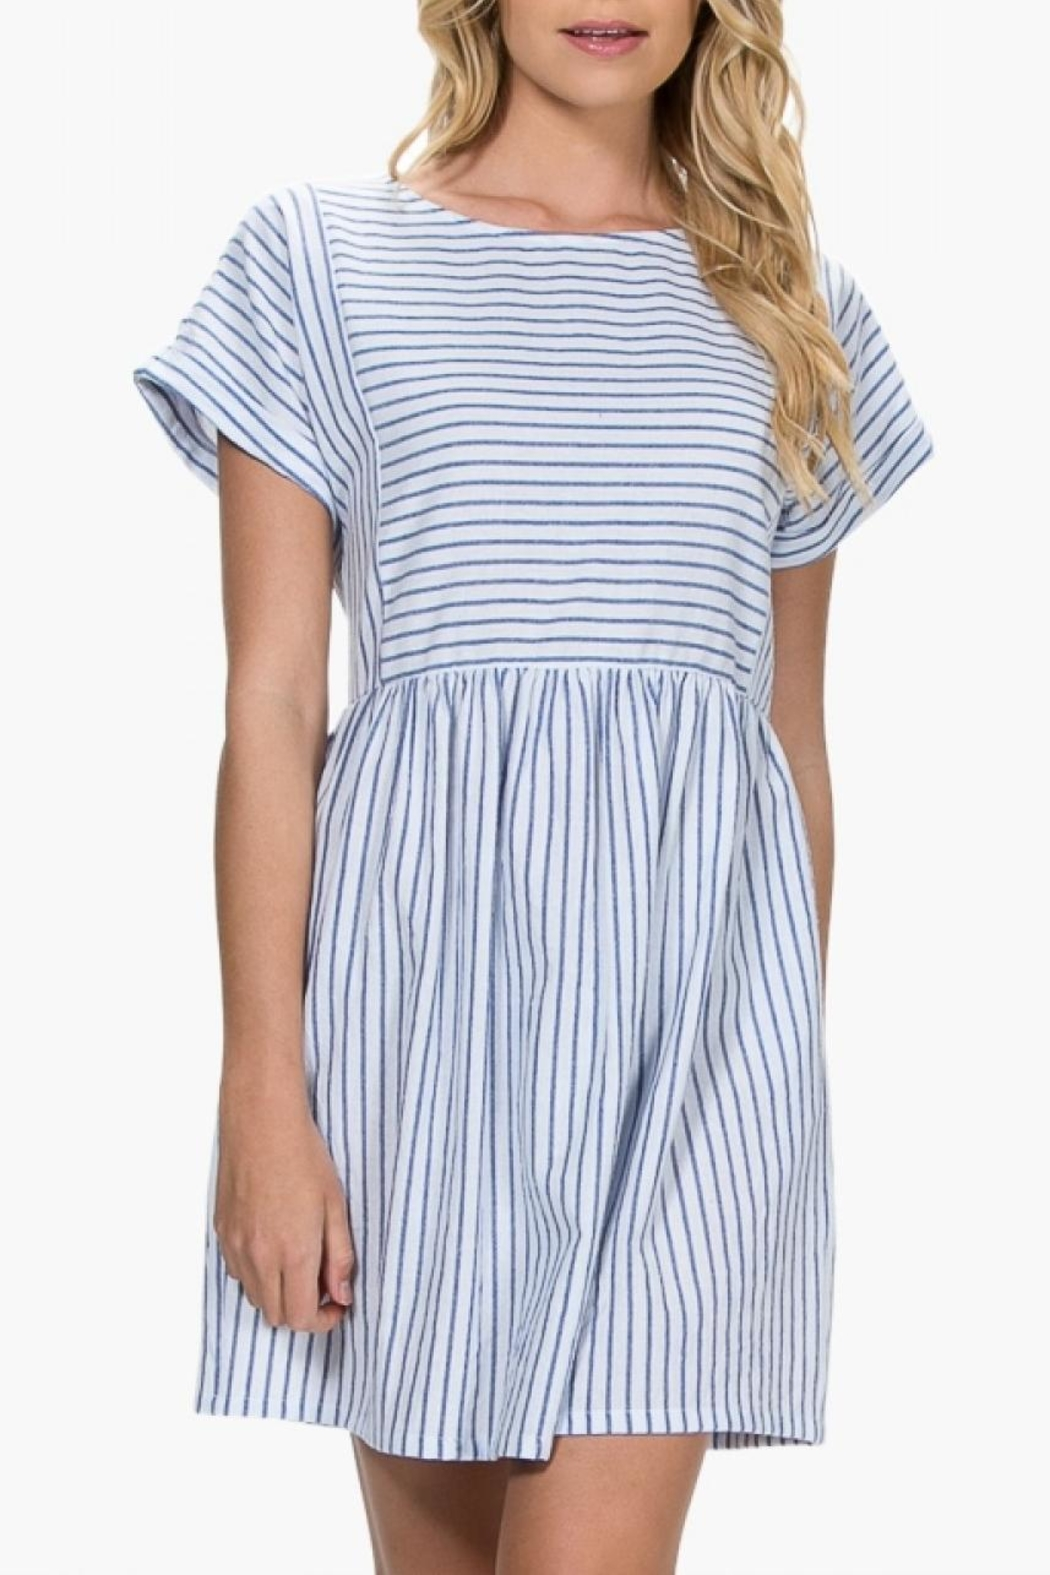 5492dd9cb7b3 Everly Striped Babydoll Dress from Virginia by mod soul — Shoptiques